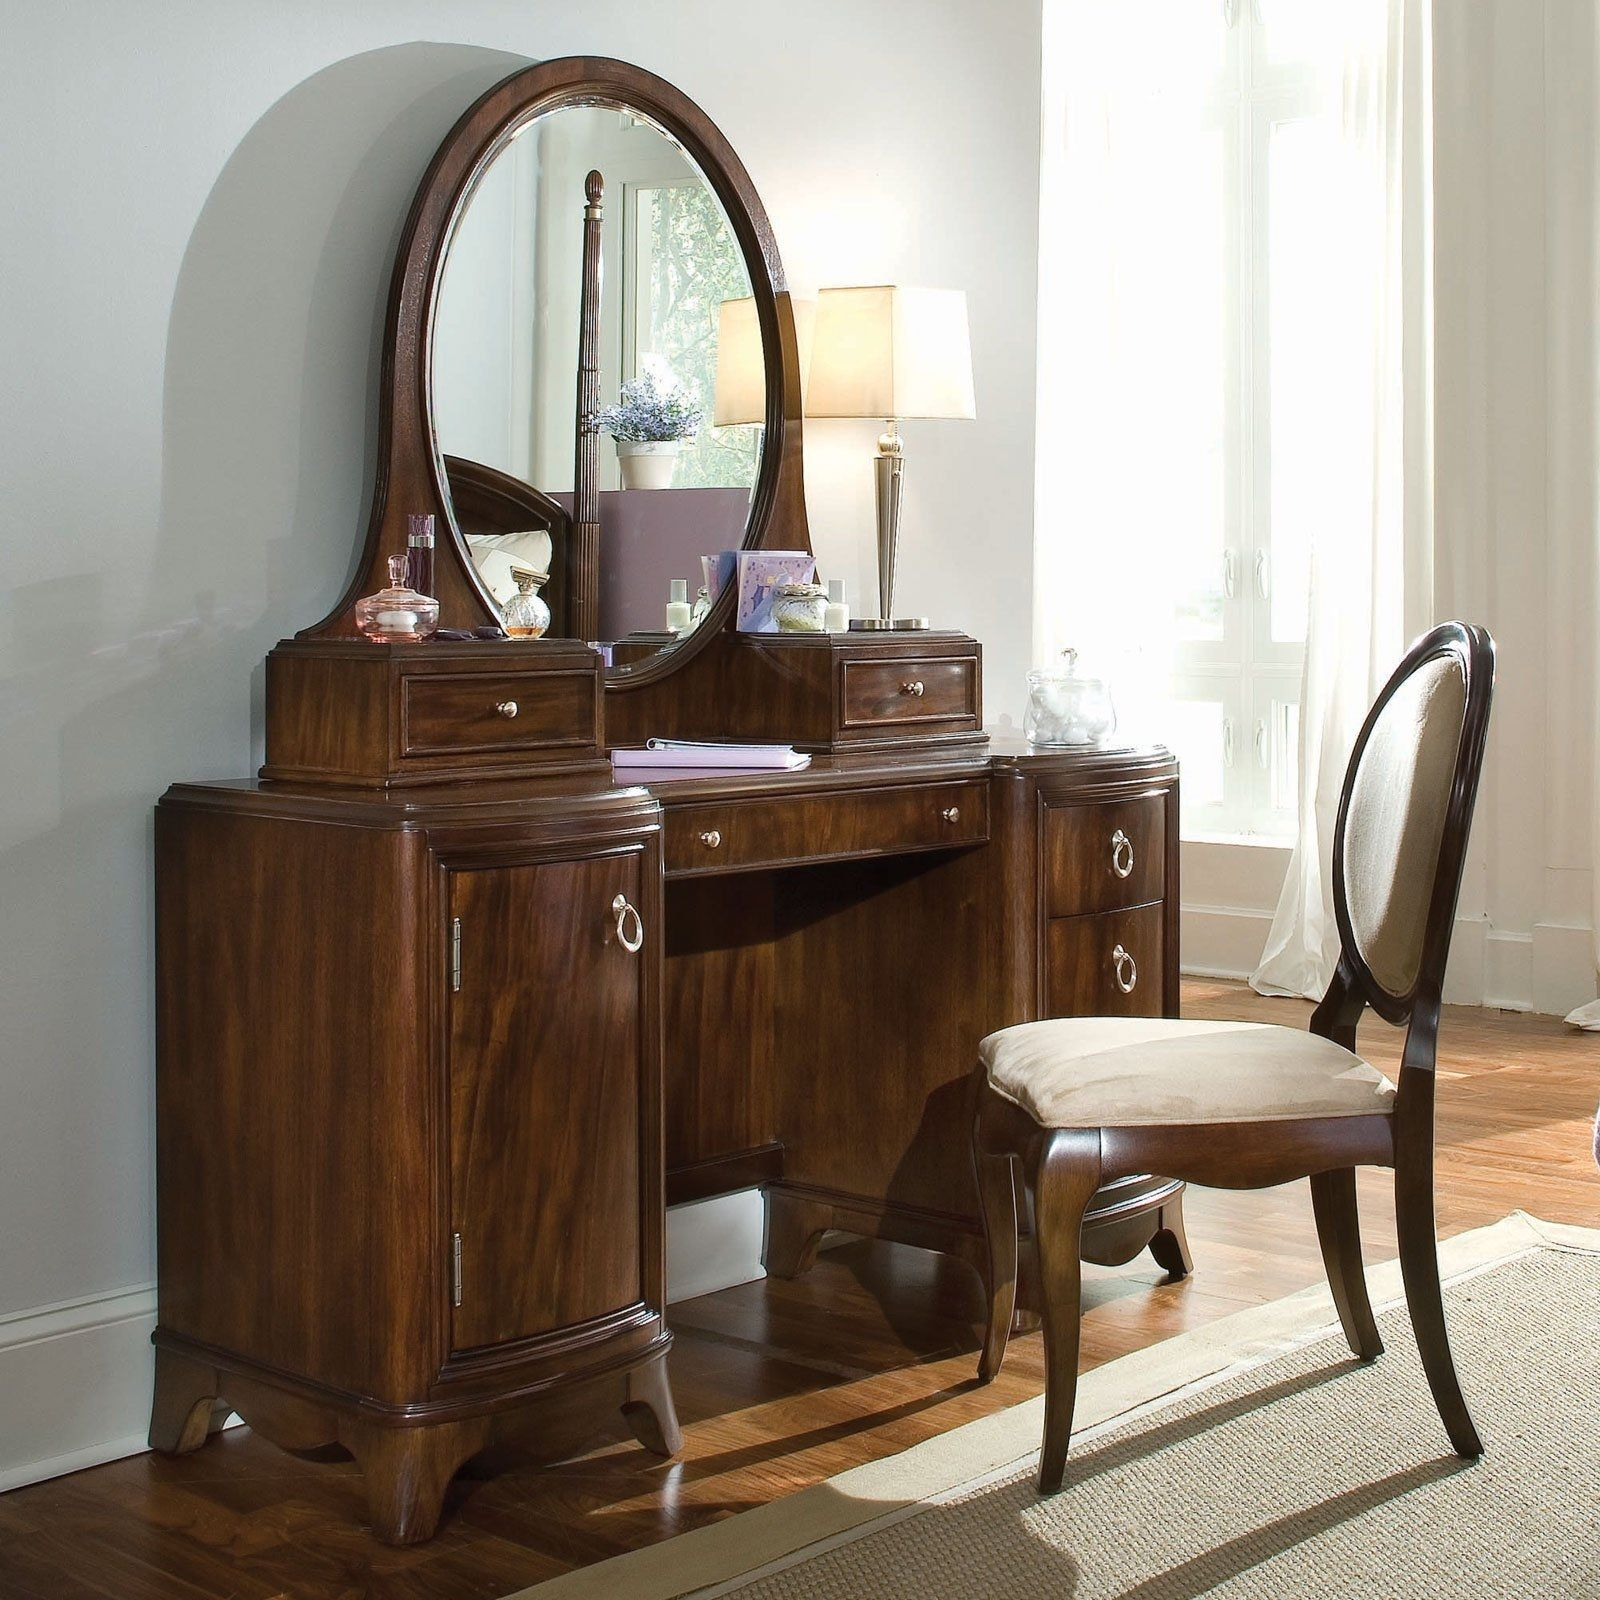 Vanity furniture bedroom antique furniture pinterest vanities